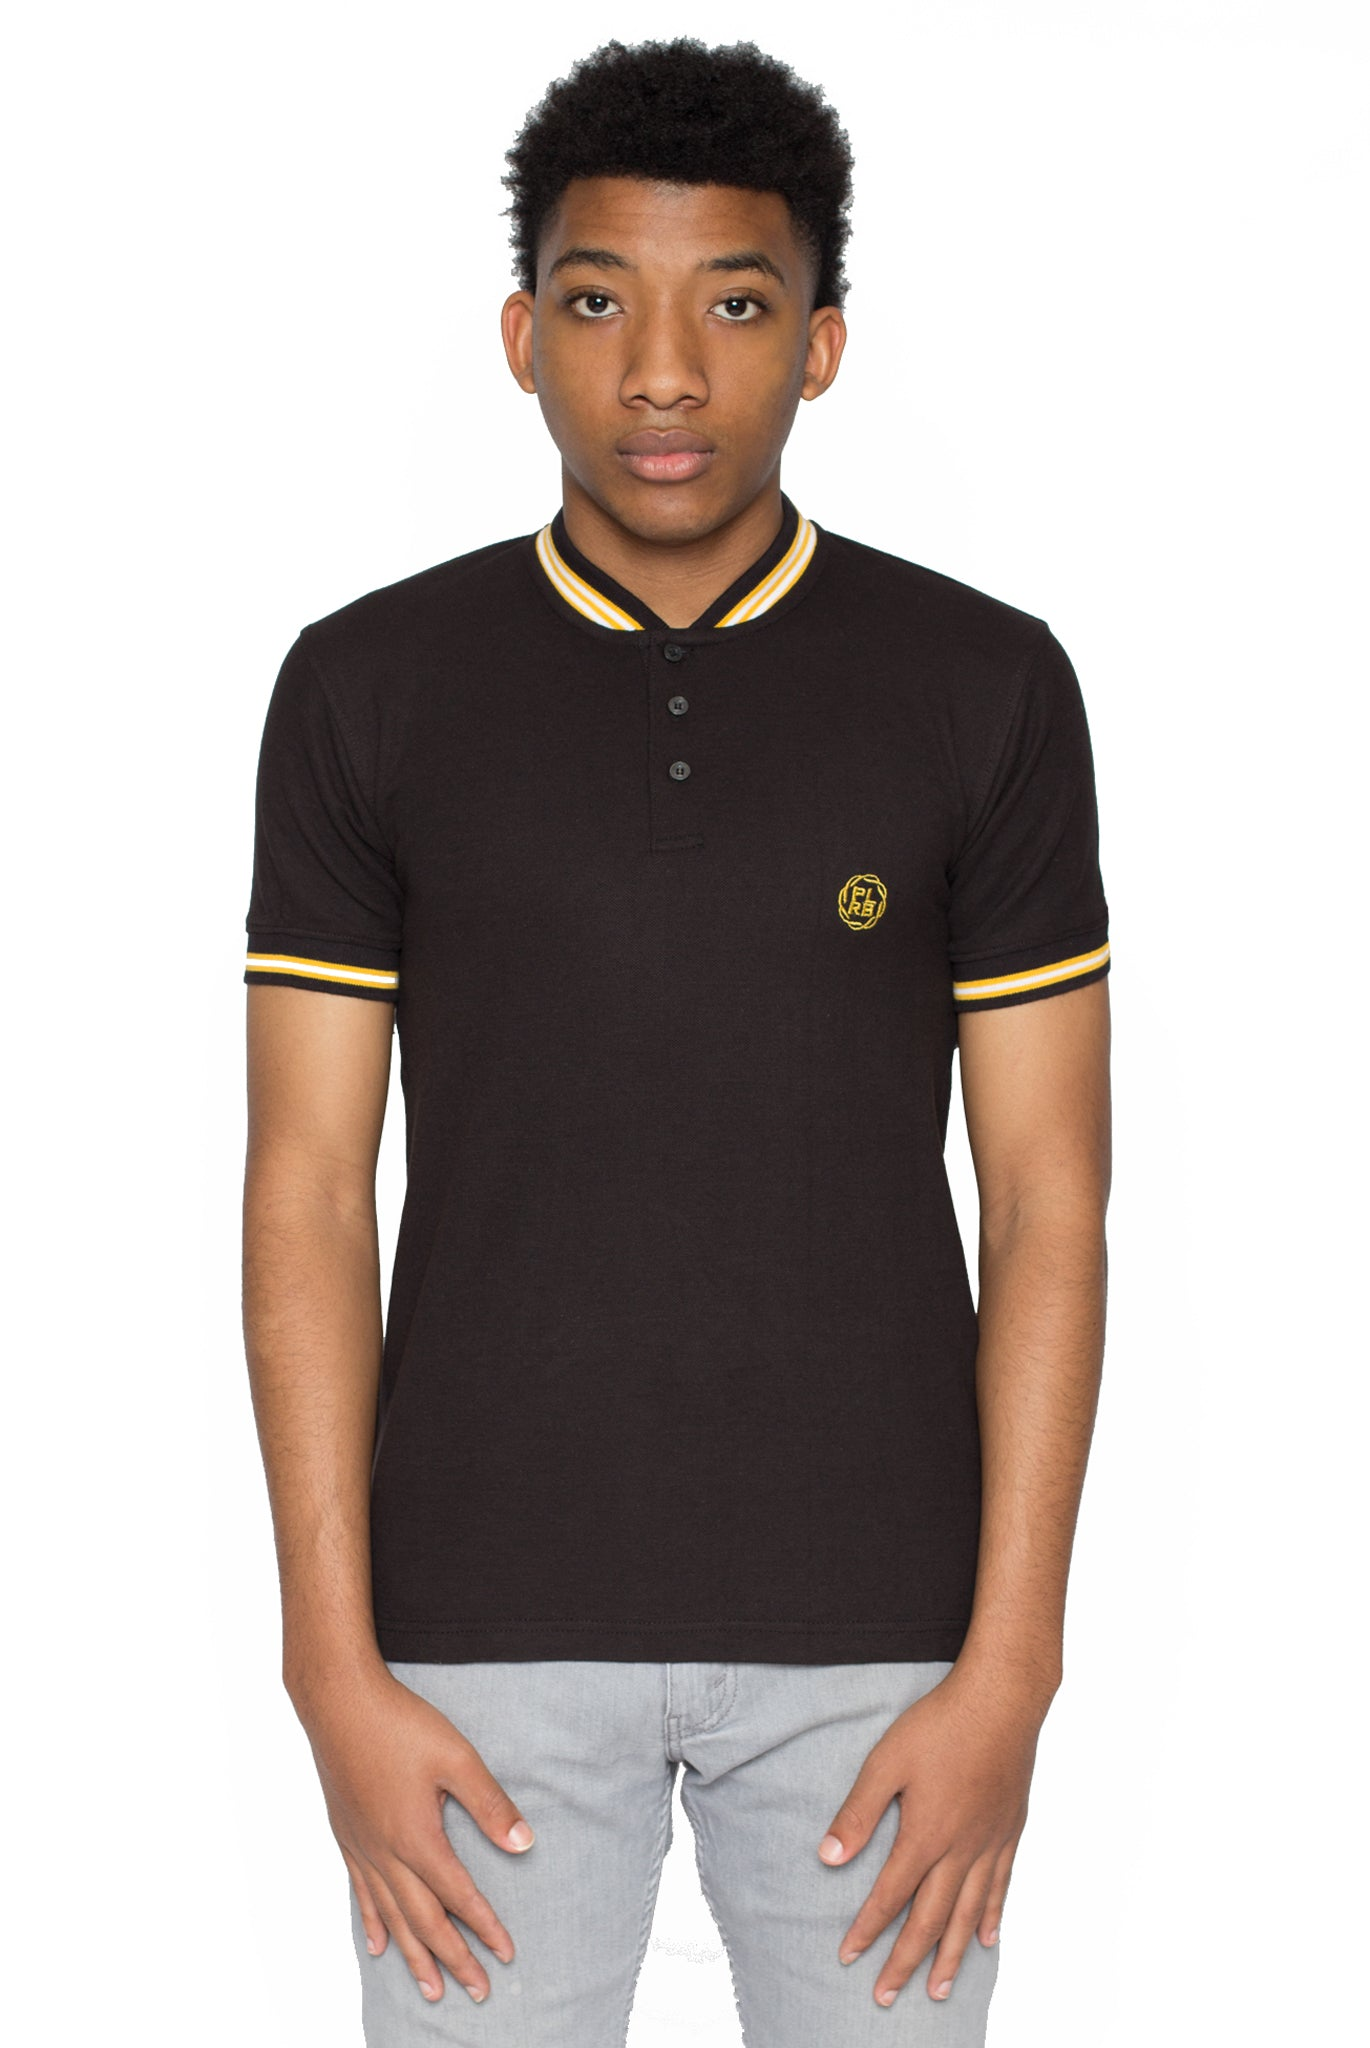 YOUNTVILLLE POLO SHIRT IN BLACK | Poor Little Rich Boy Clothing